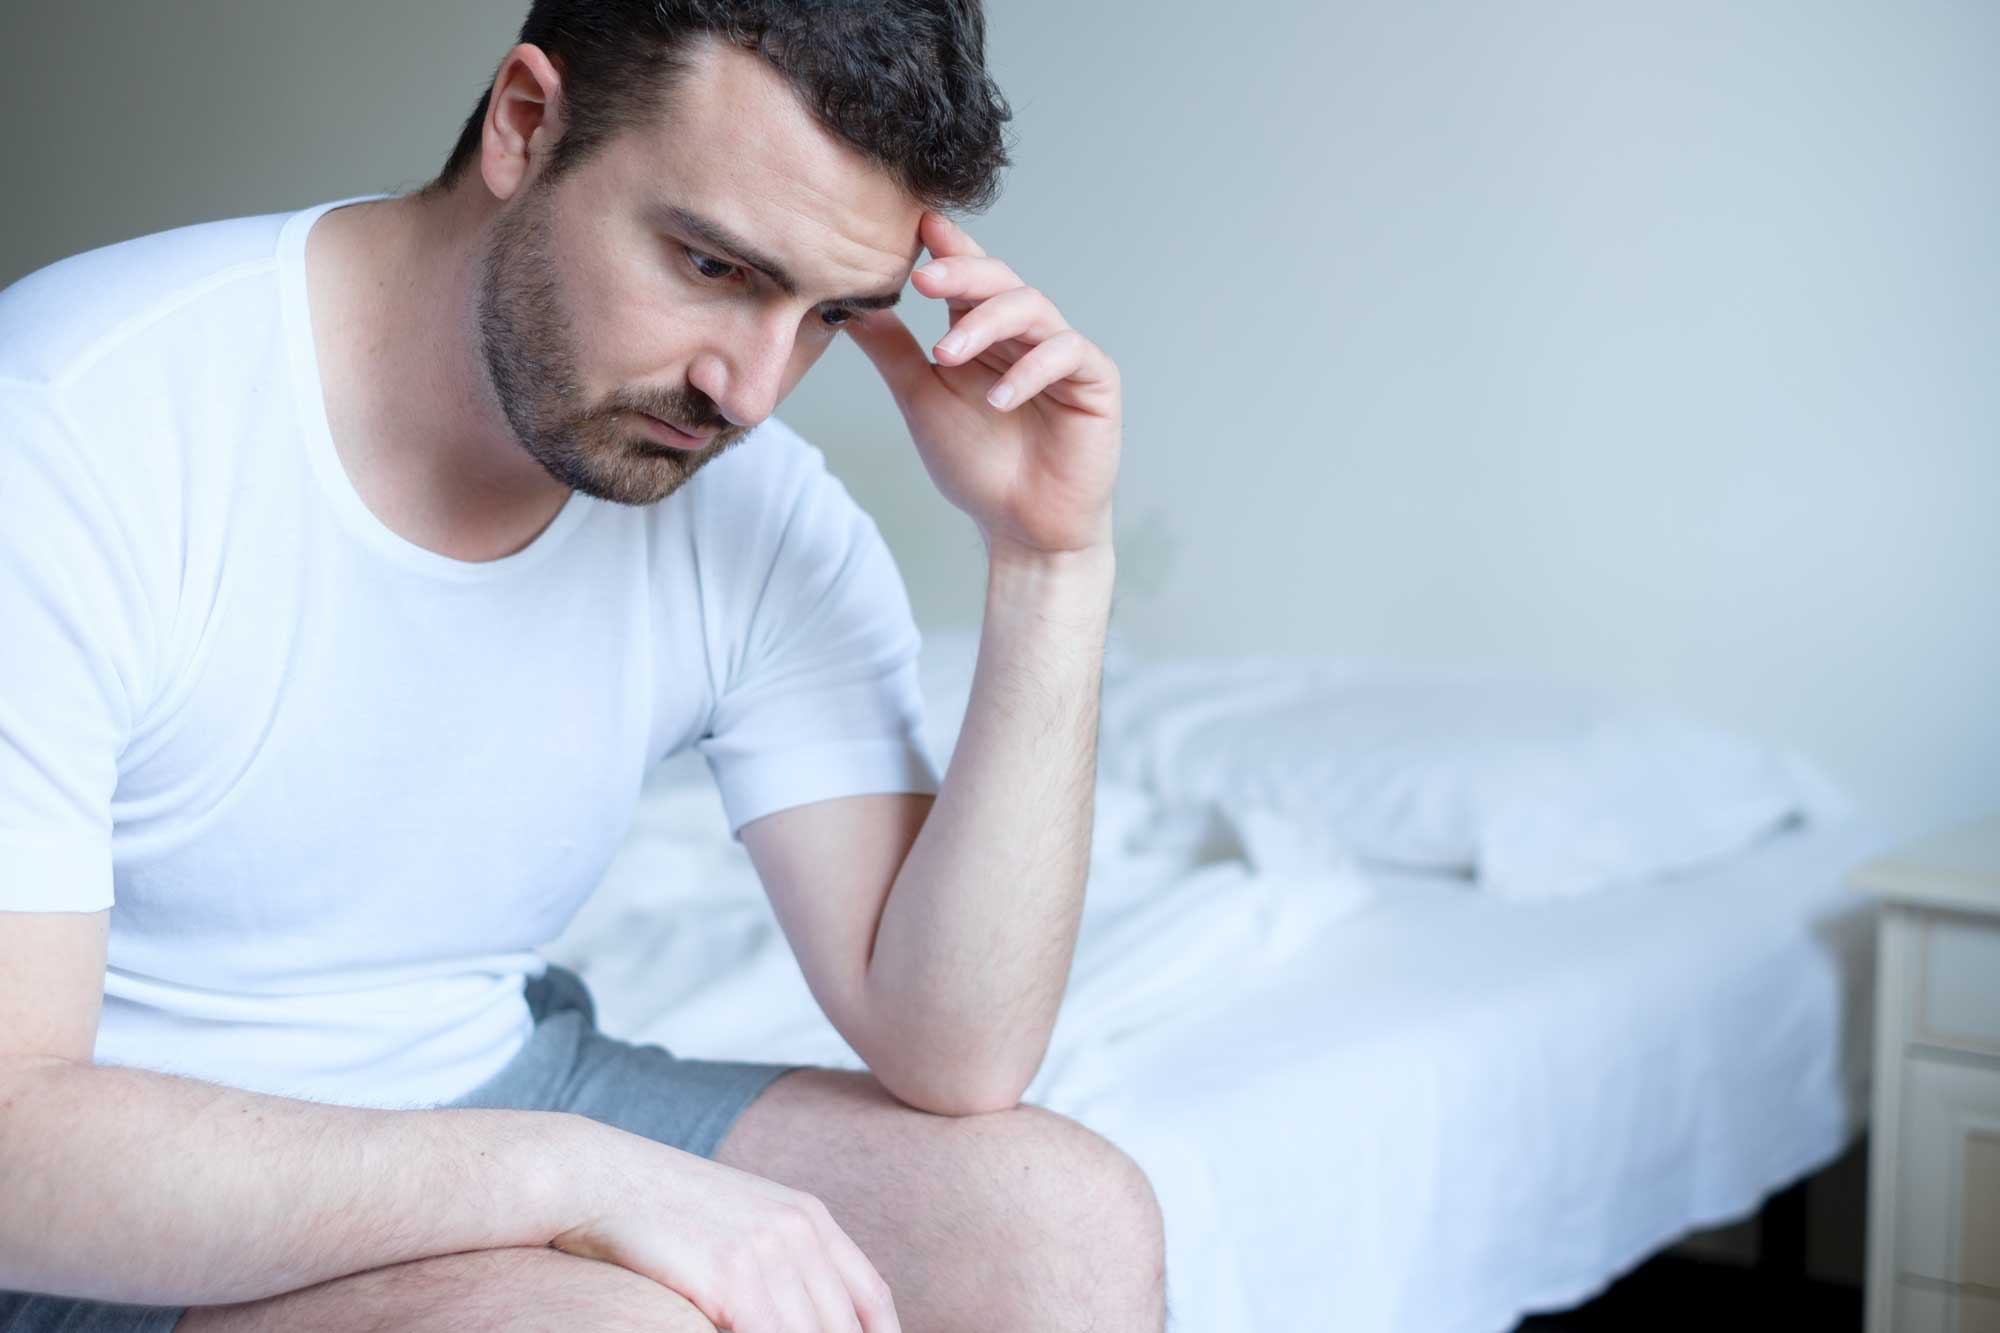 A new helpline for male victims of domestic abuse